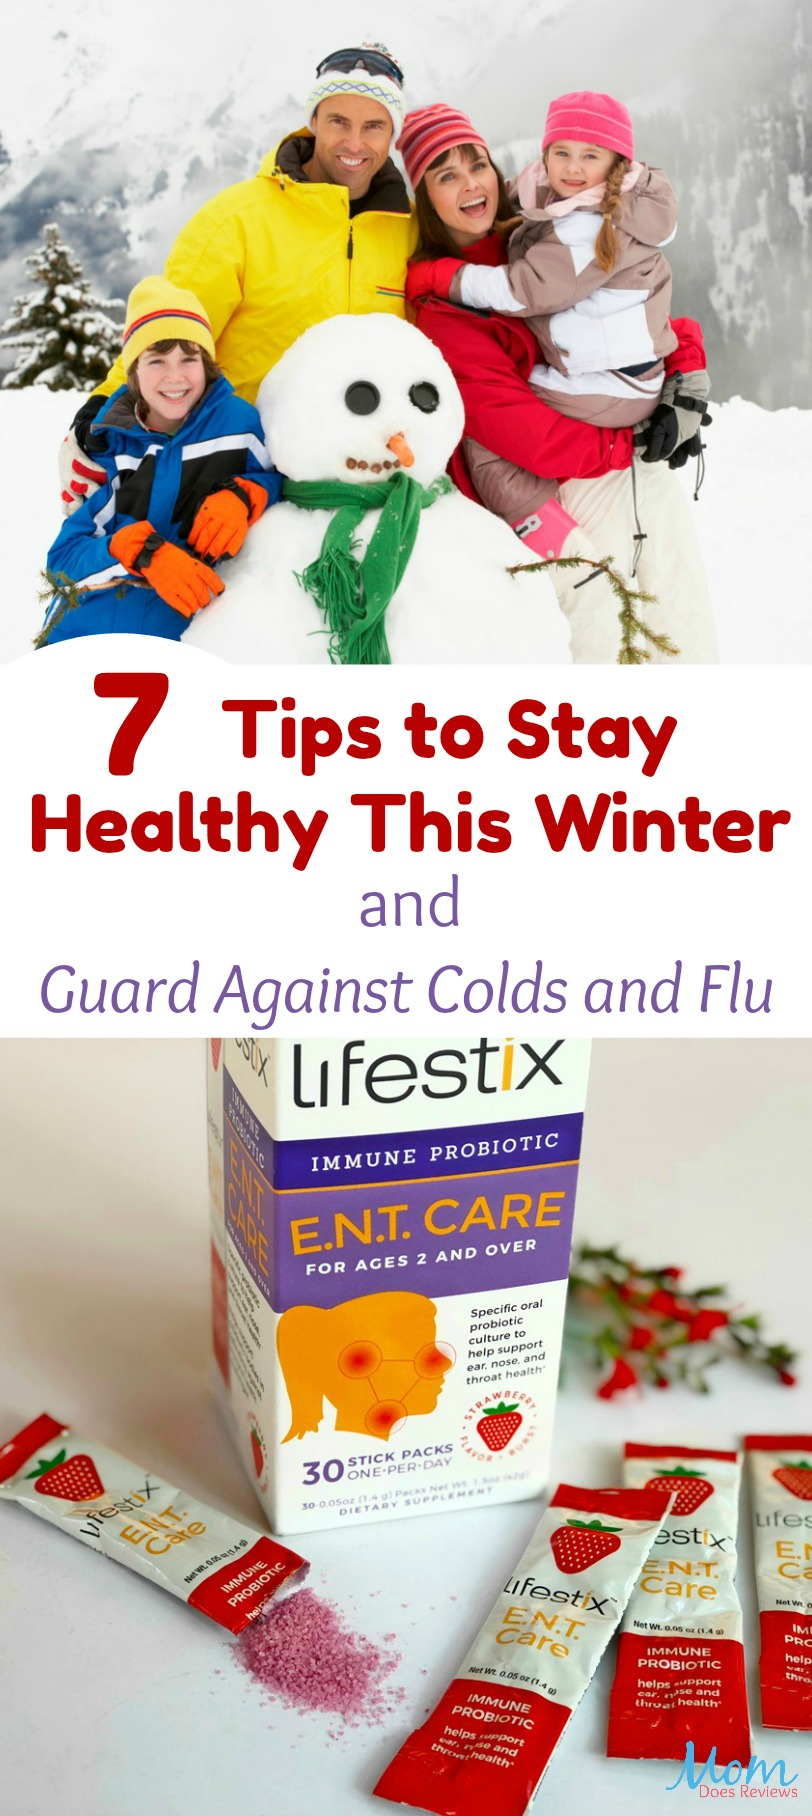 7 Tips to Stay Healthy This Winter and Guard Against Colds and Flu